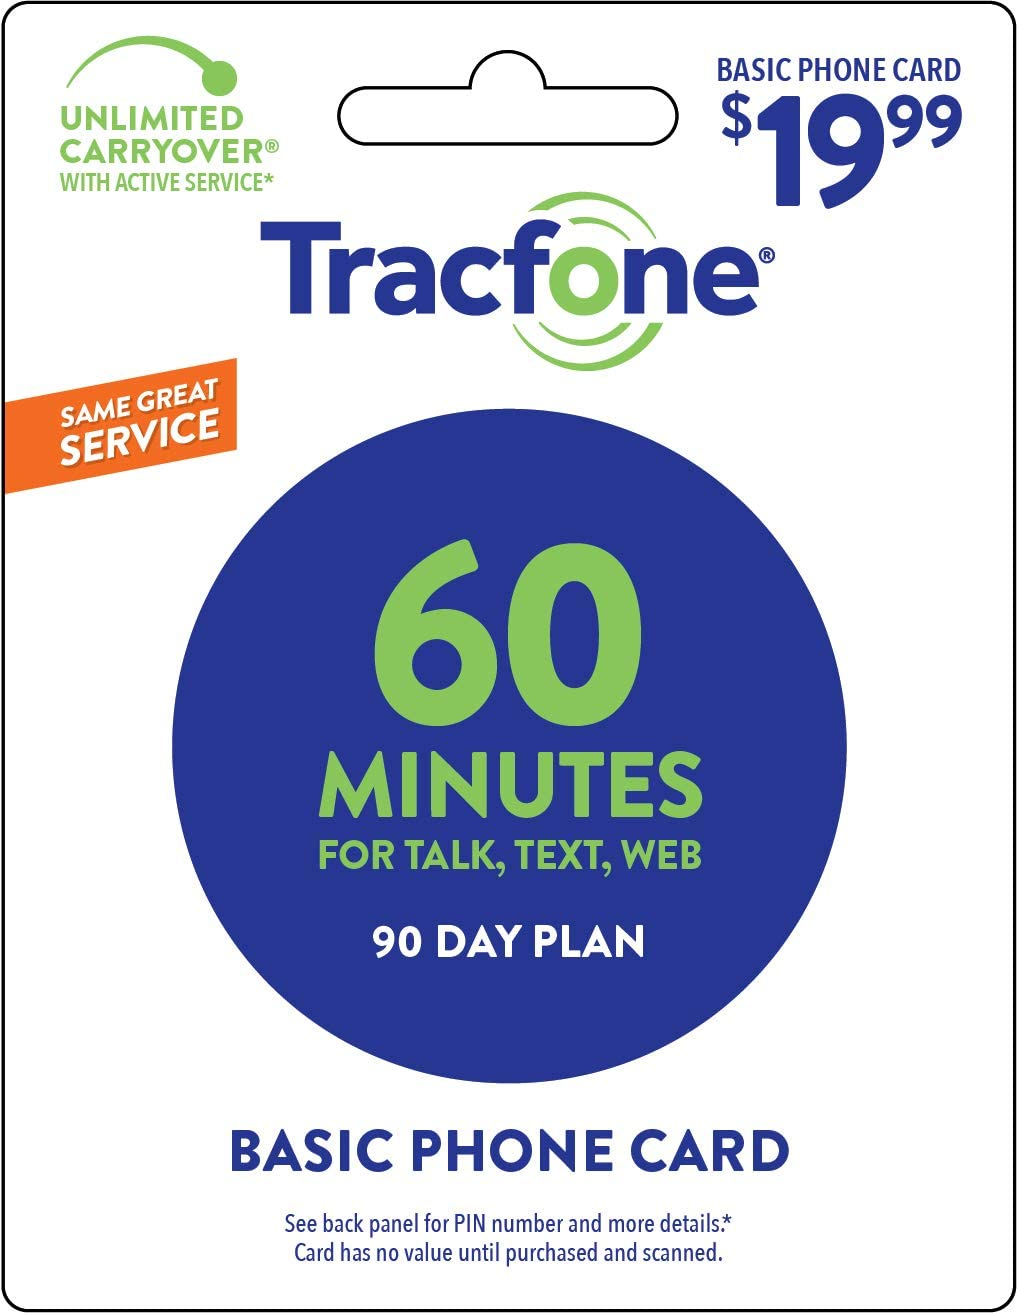 B003OTGYCC Tracfone 60 Minute Card + 90 days of Service - Airtime Card Refill - PIN # Number (Tracfone USA Only) 61gG2Bm2BJjVL